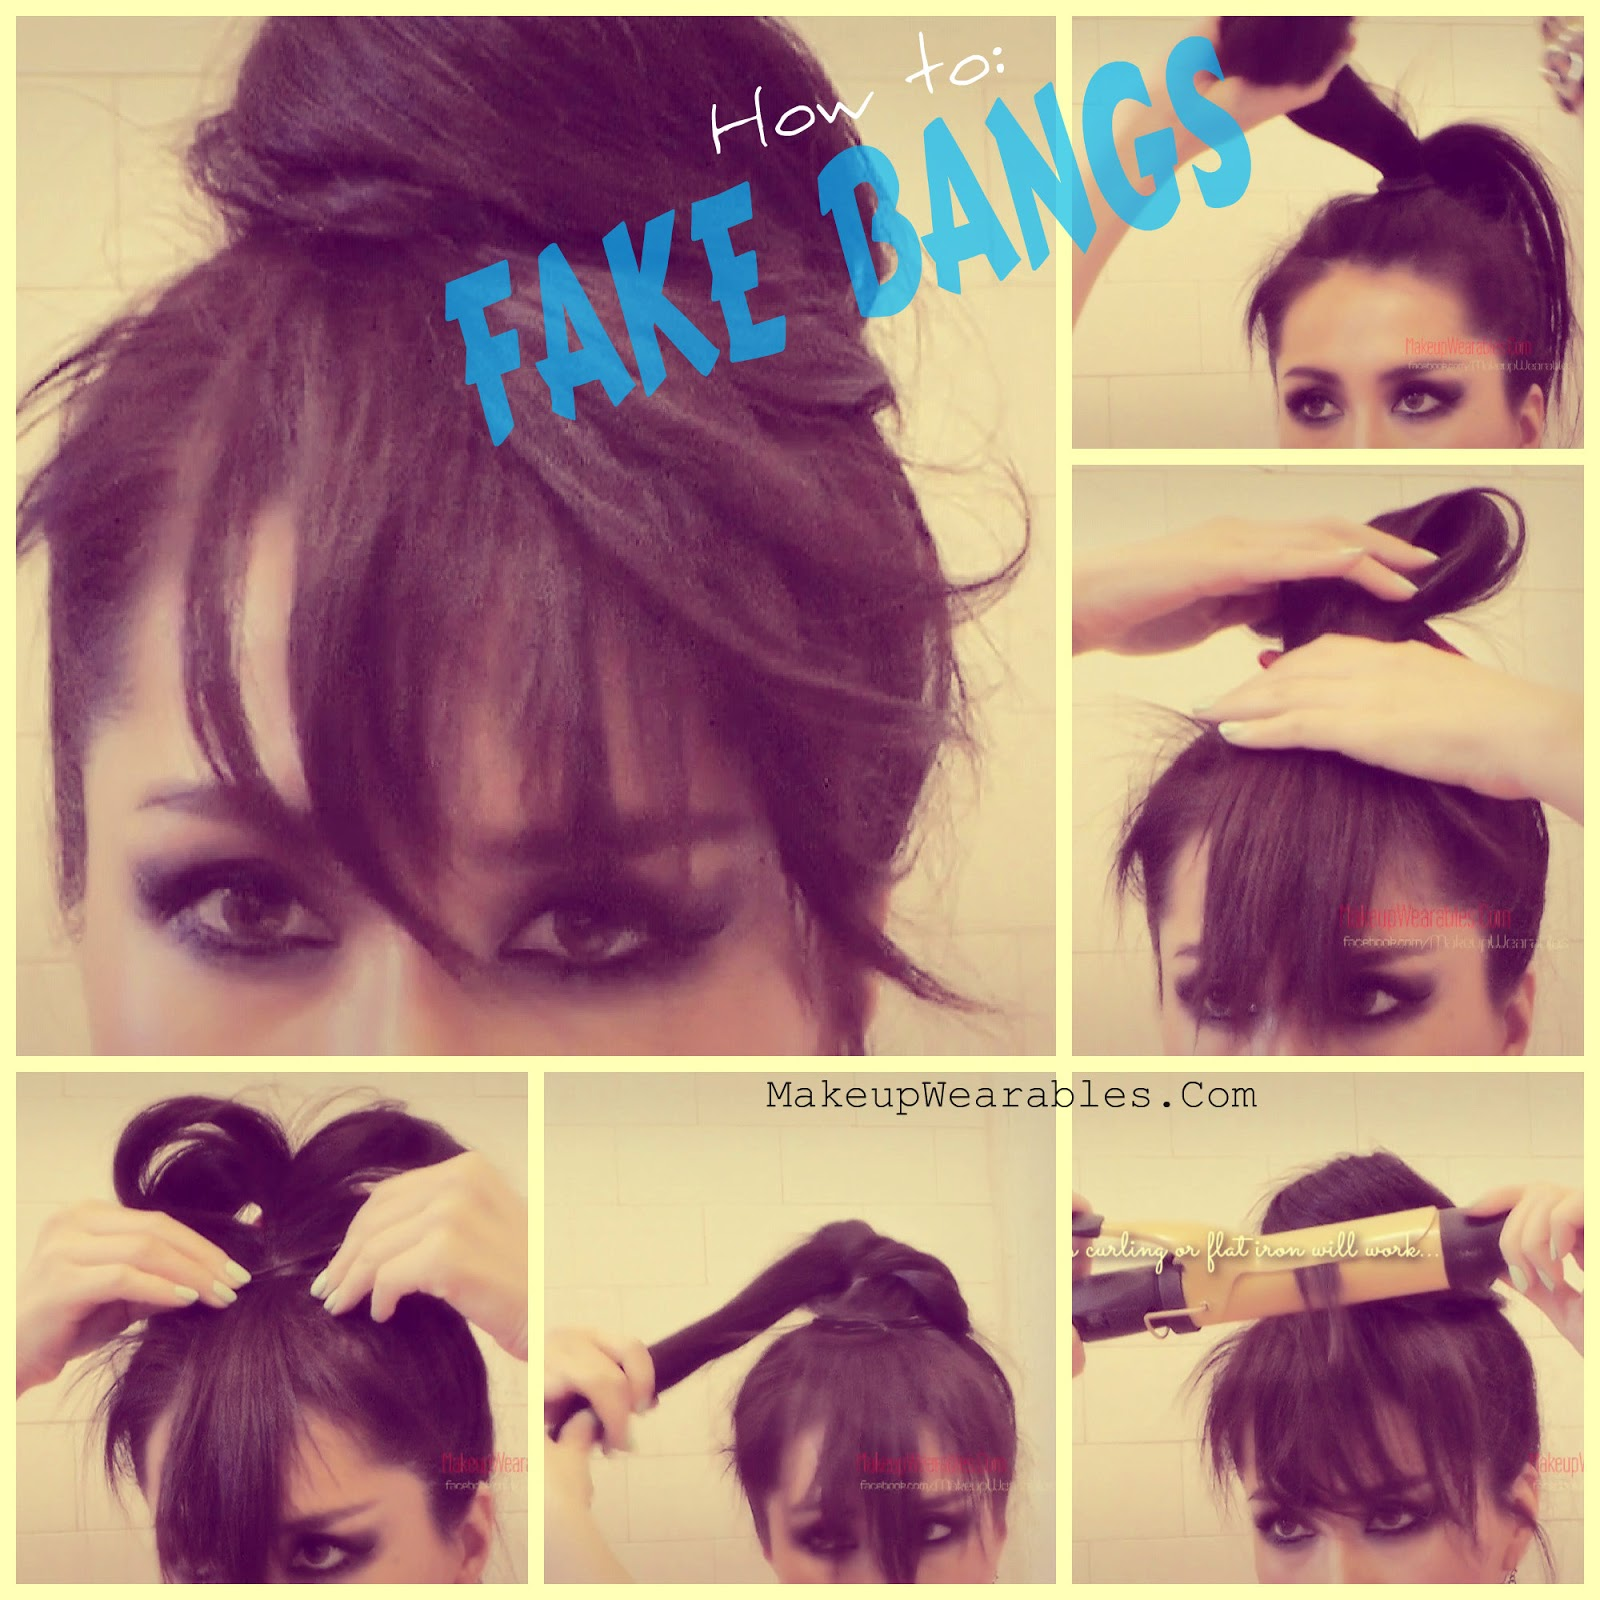 Magnificent How To Fake Bangs Cute Easy Bun Hairstyles Hair Tutorial Video Hairstyle Inspiration Daily Dogsangcom